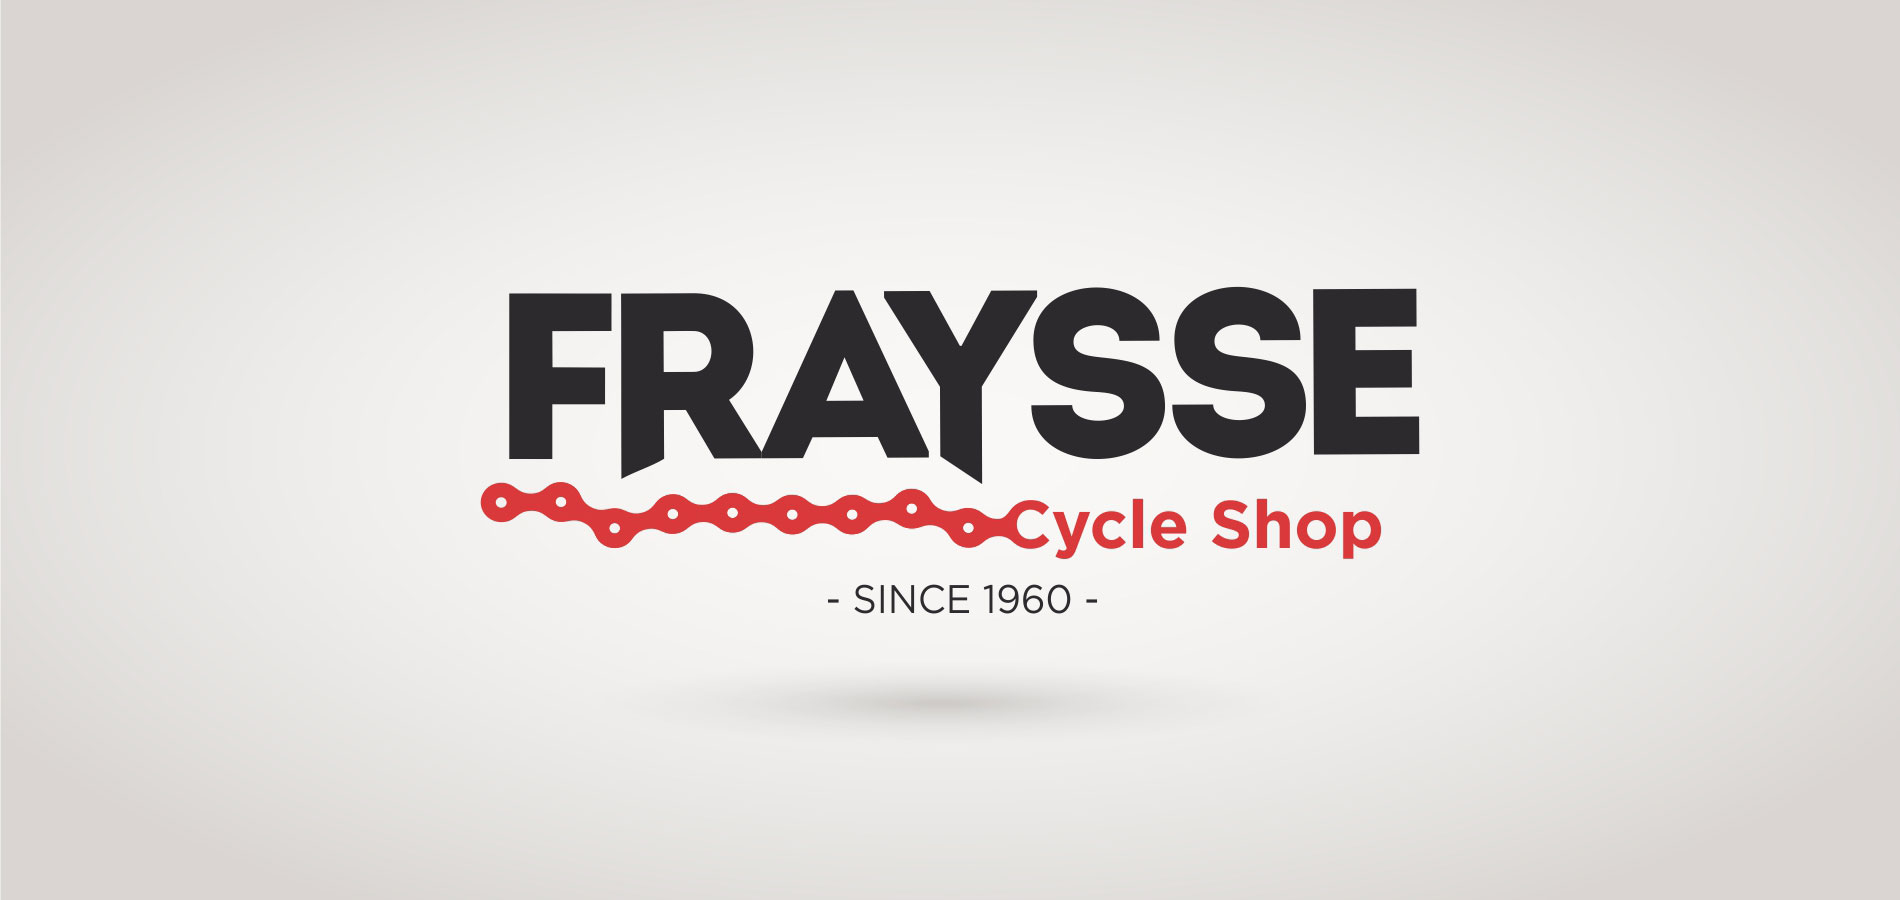 Fraysse Cycle Shop